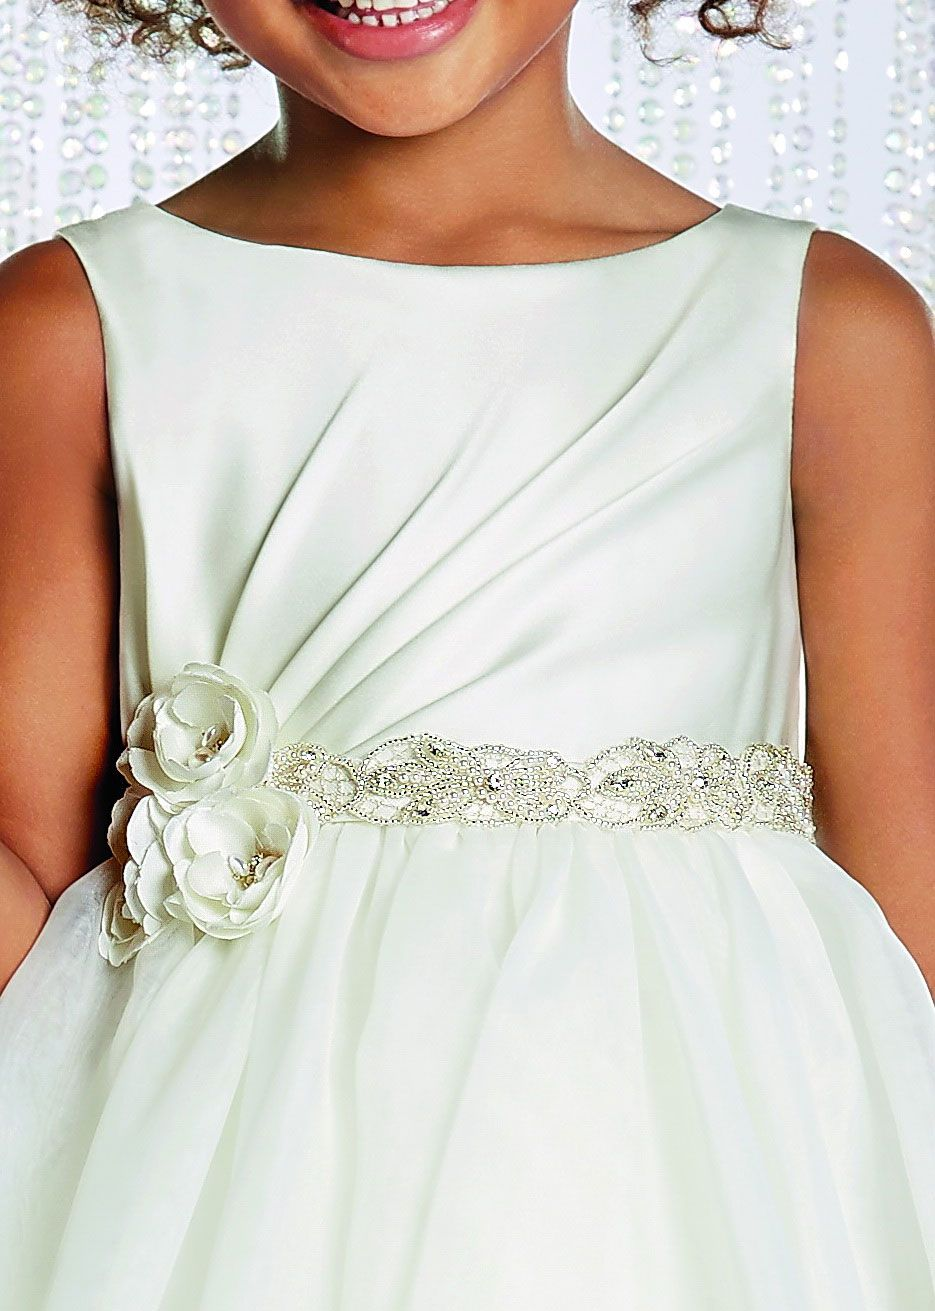 AA_732_SALE - Alfred Angelo Girls Dress Style 732 - SALE White-Silver Size 8 (1 piece available) - Alfred Angelo - Flower Girl Dresses - Flower Girl Dress For Less